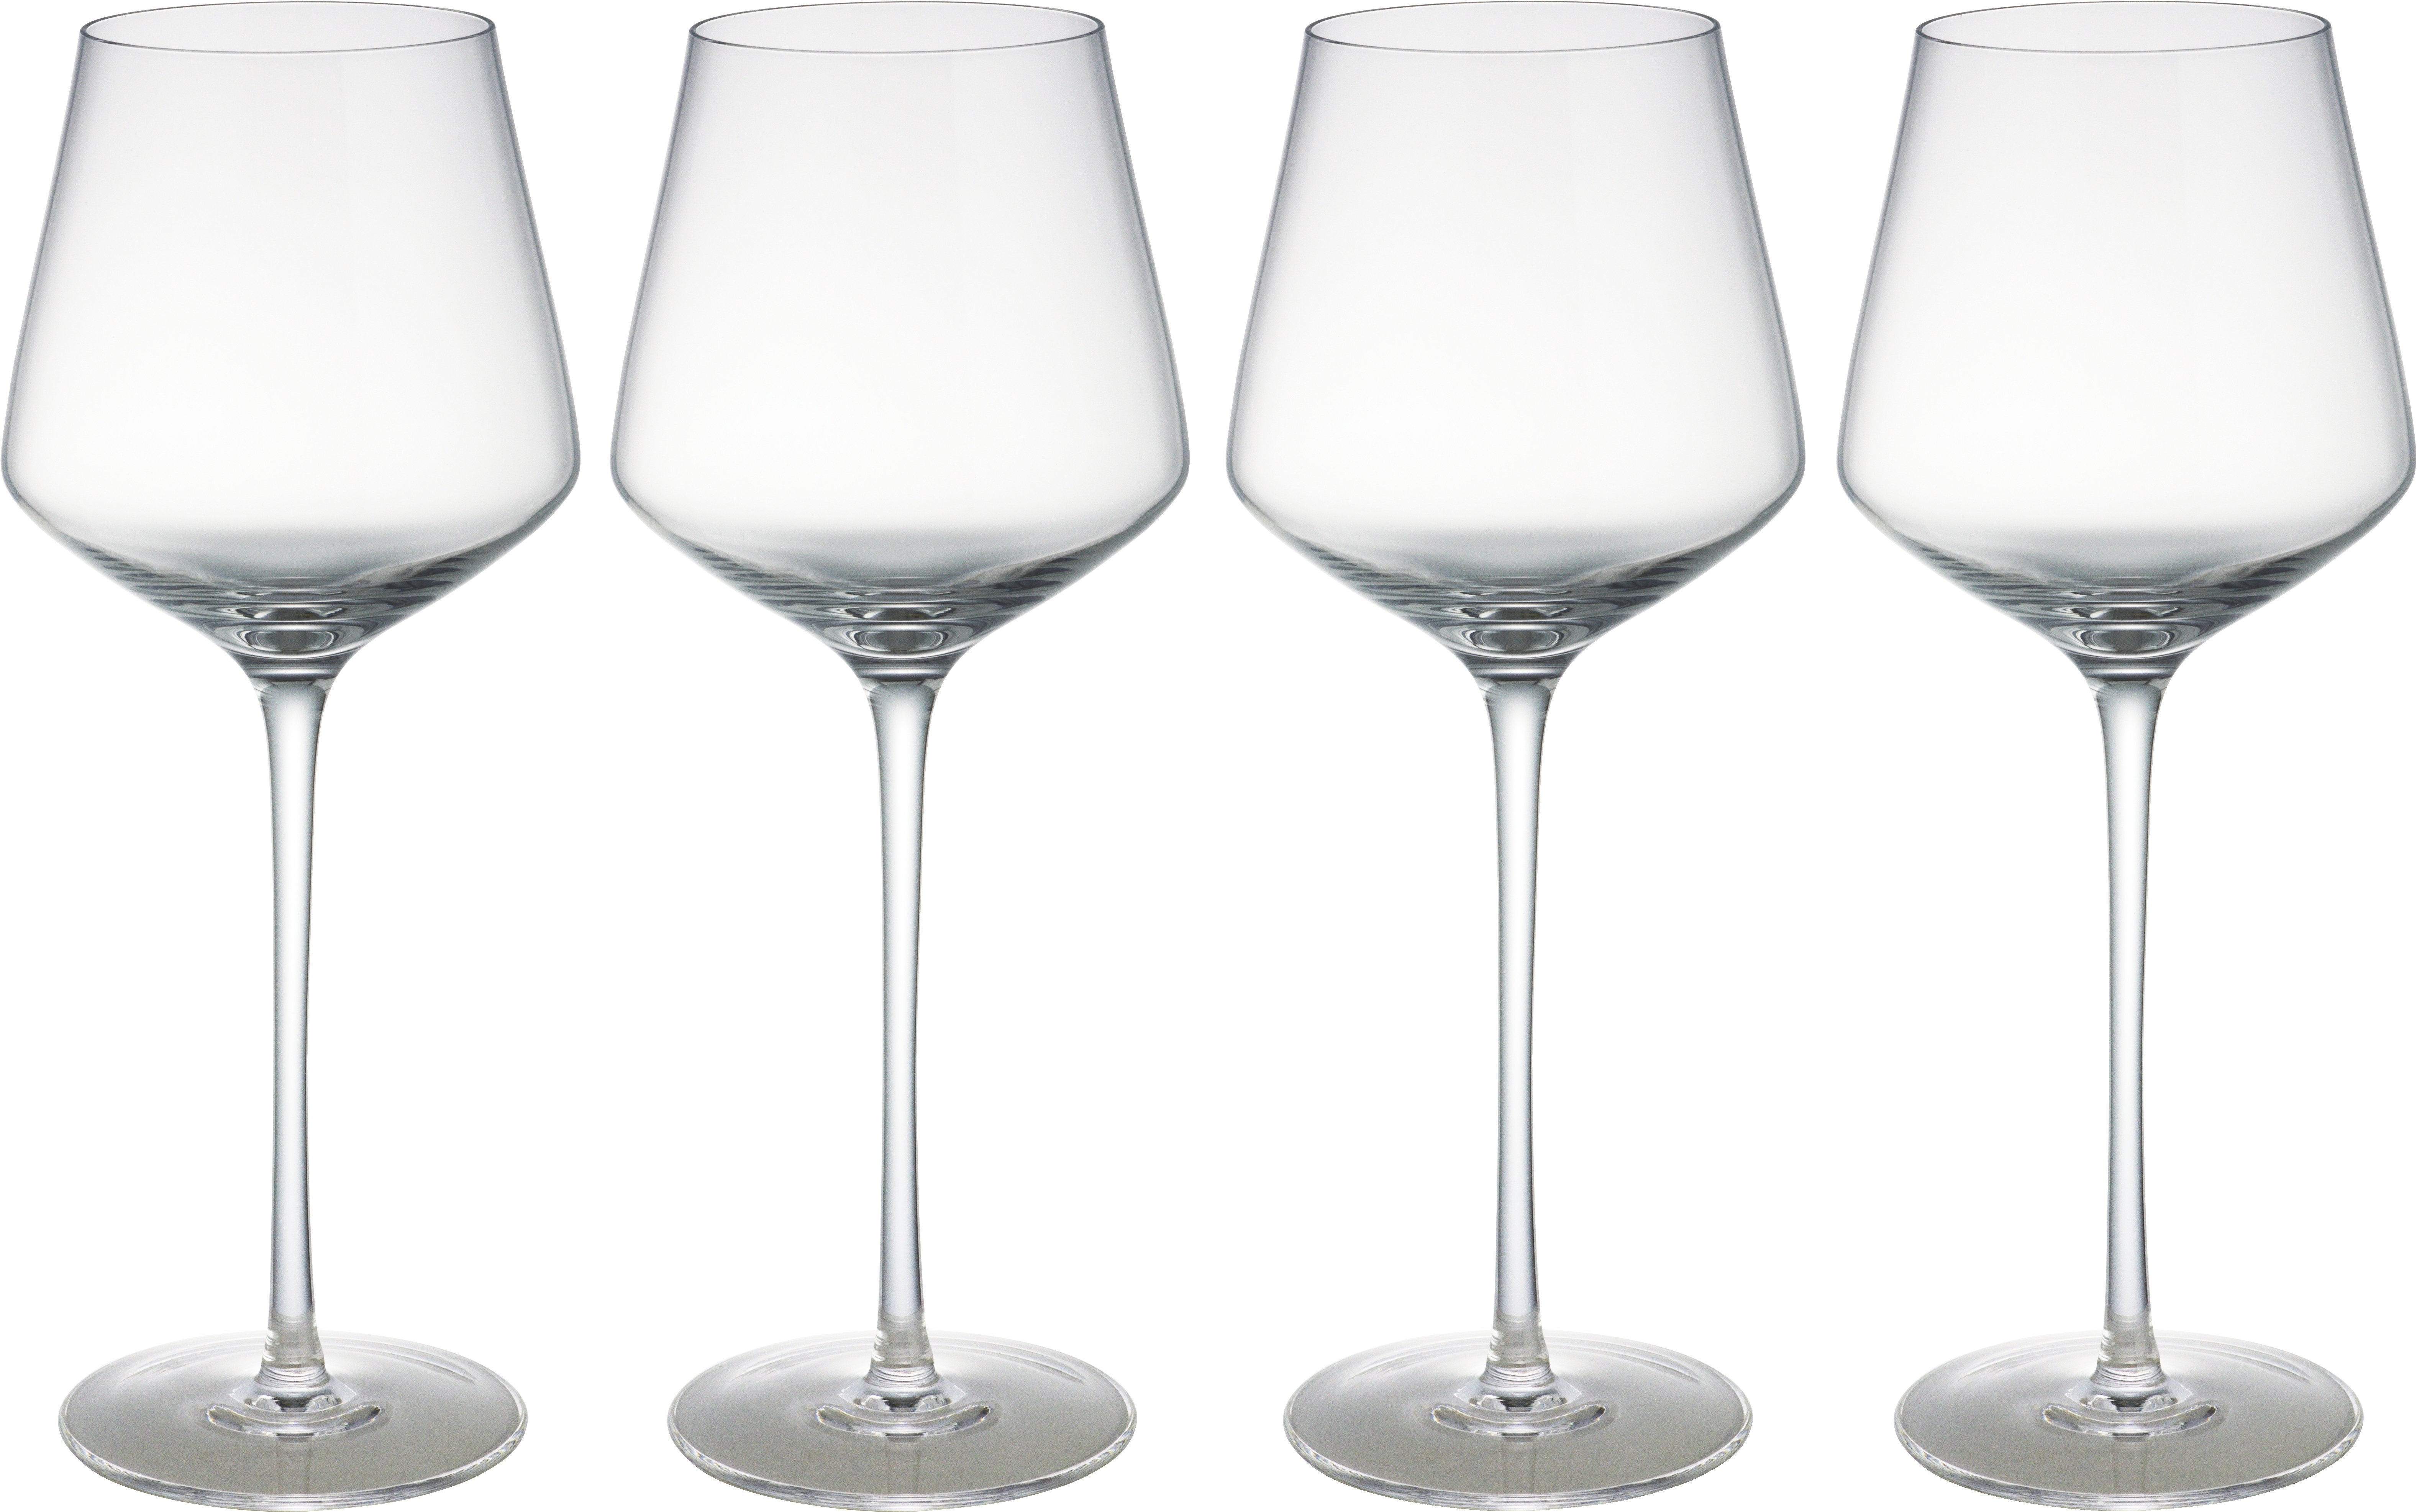 sale on habitat hamburg set of 4 white wine glasses. Black Bedroom Furniture Sets. Home Design Ideas